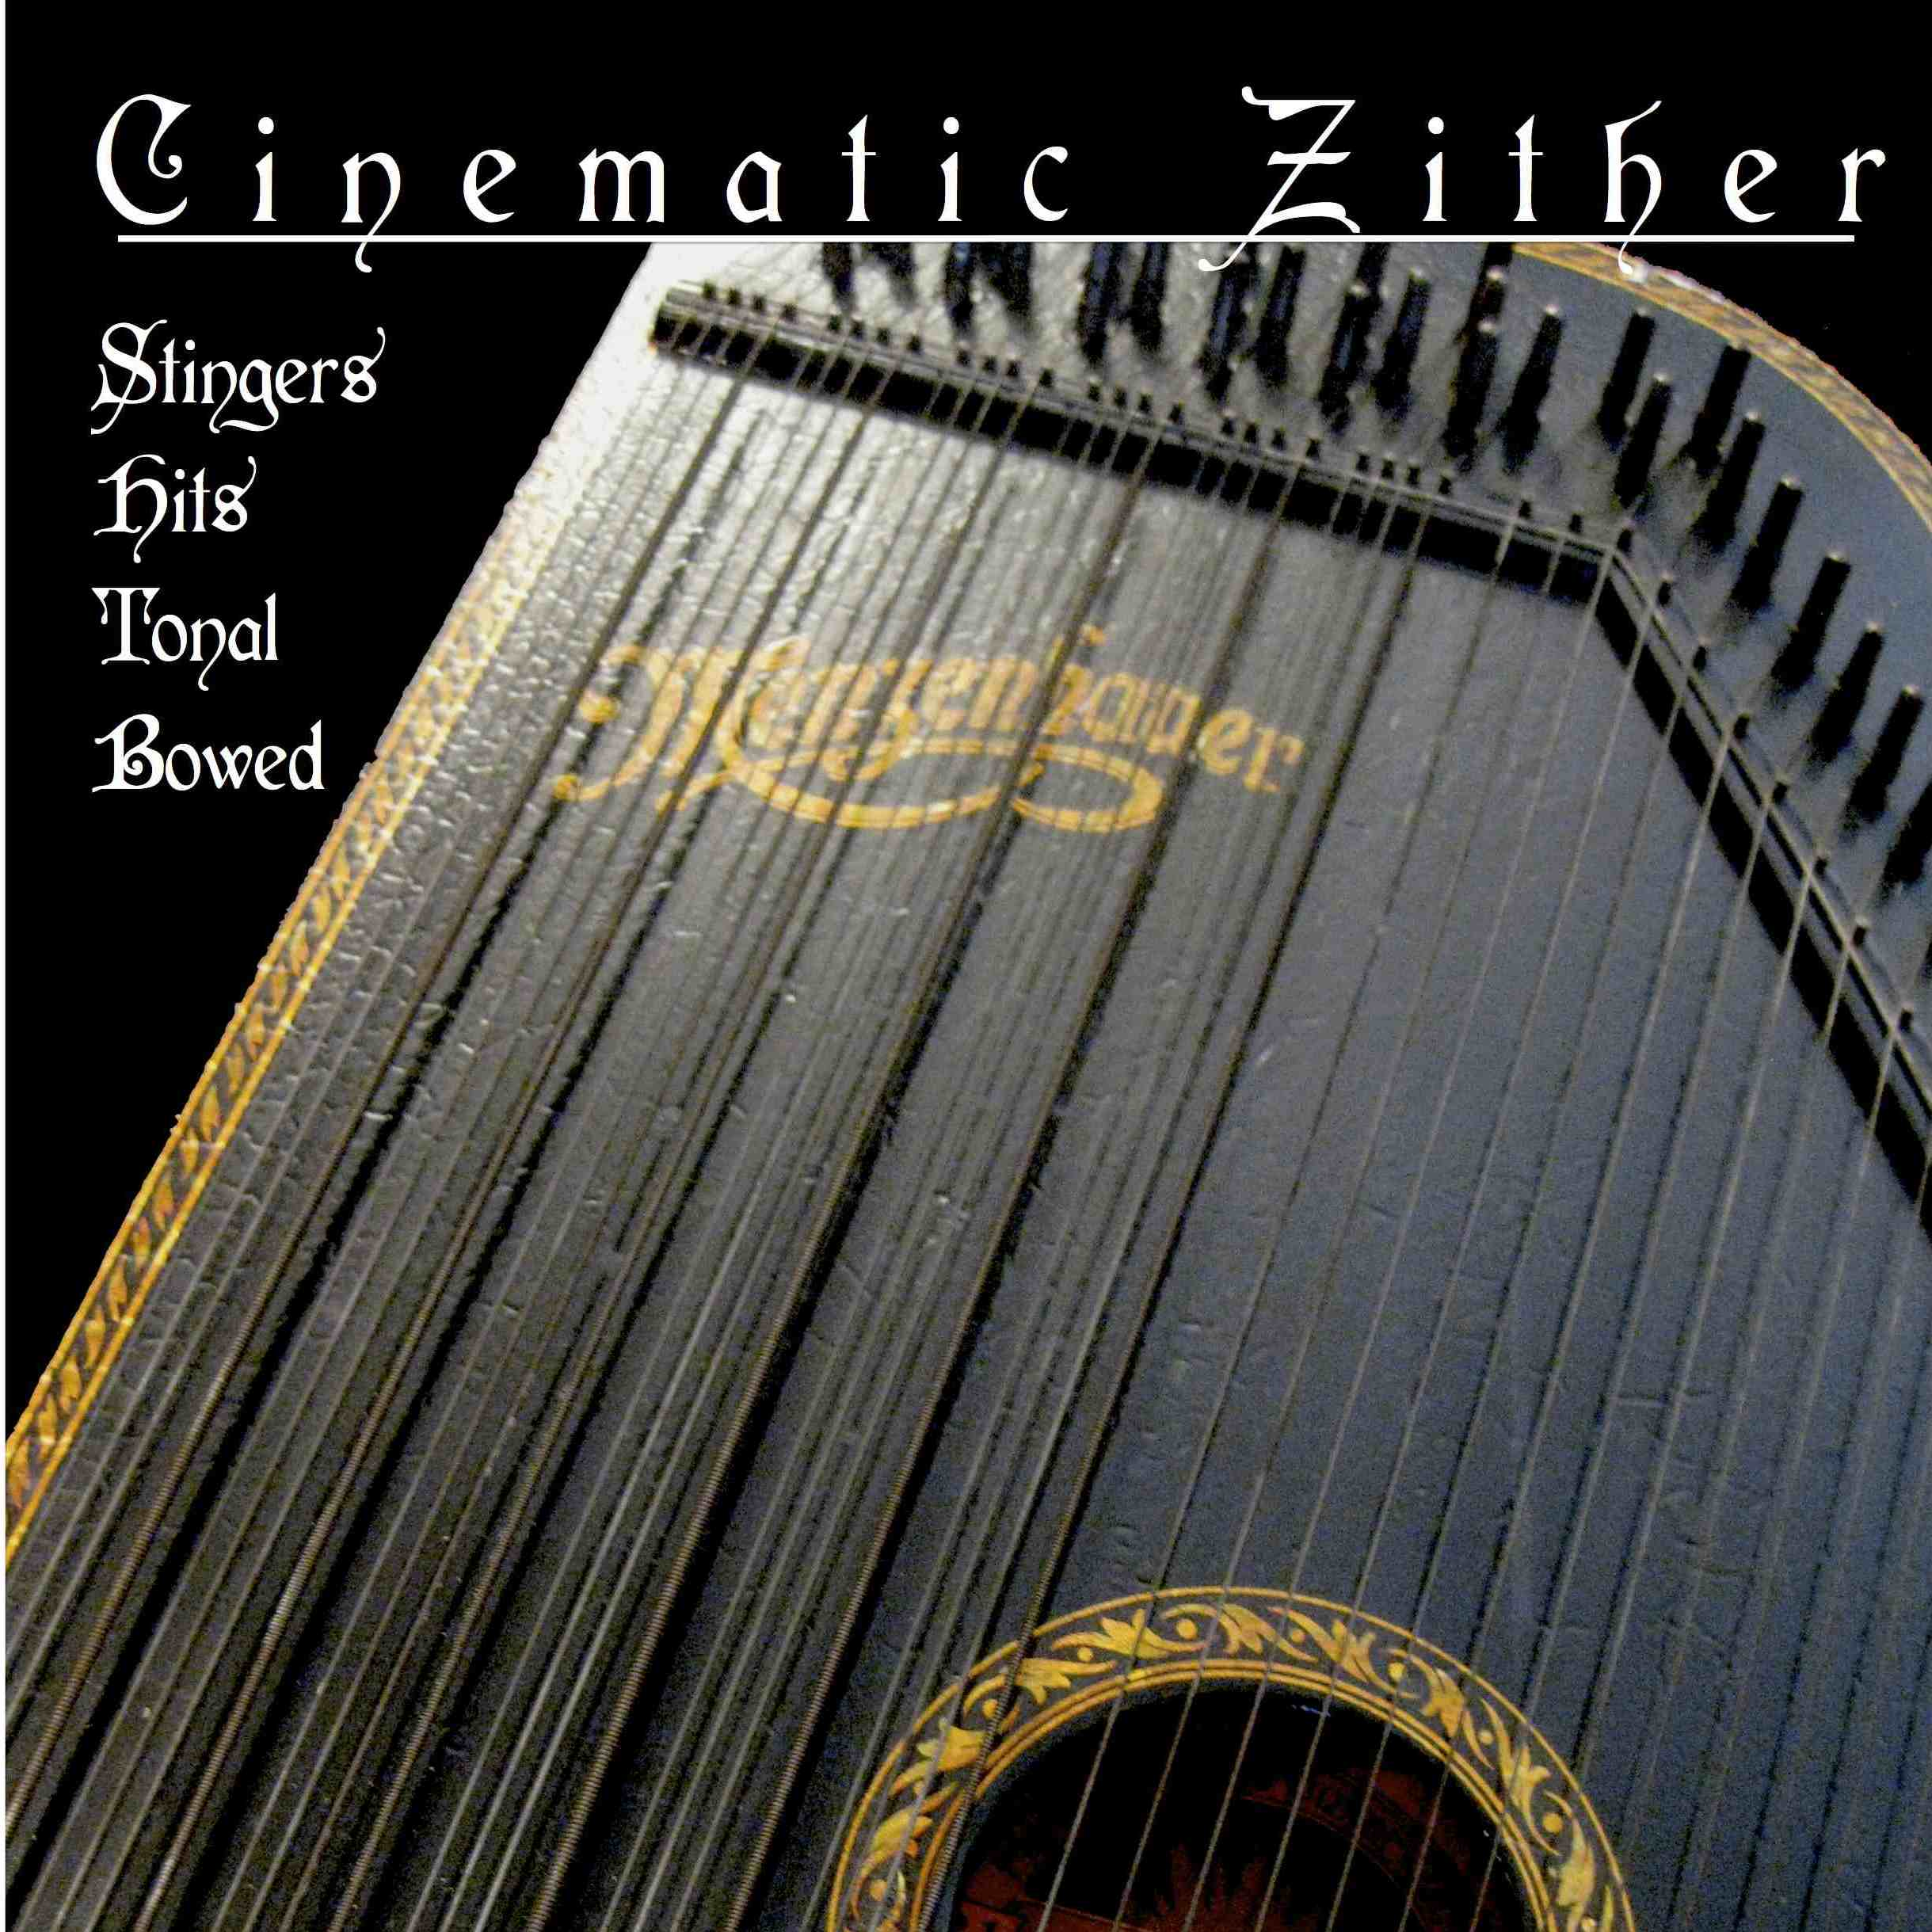 CINEMATIC ZITHER